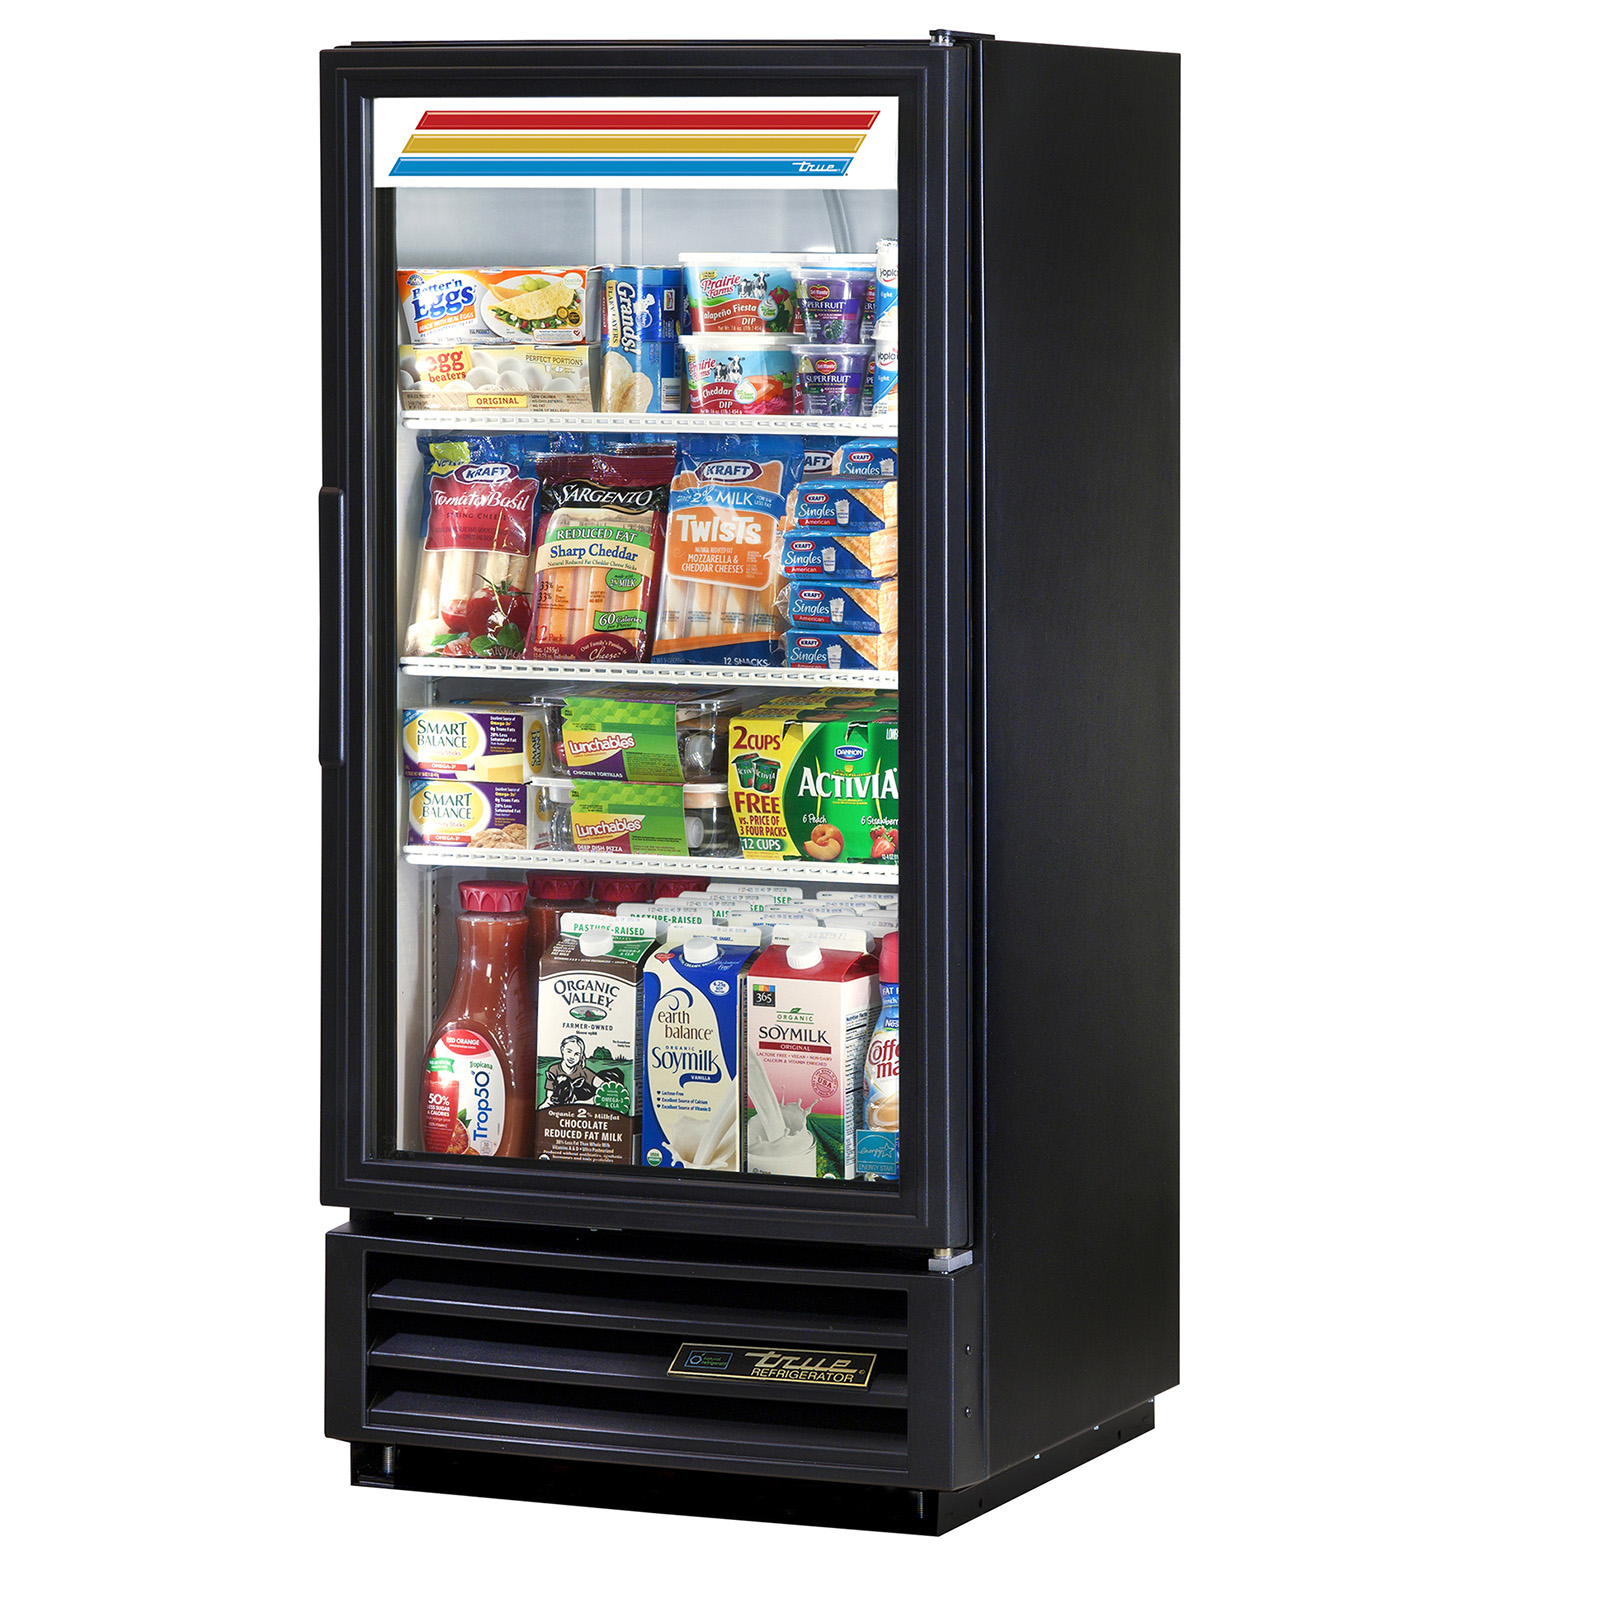 GDM-10-HC-LD True - Refrigerated Merchandiser one-section